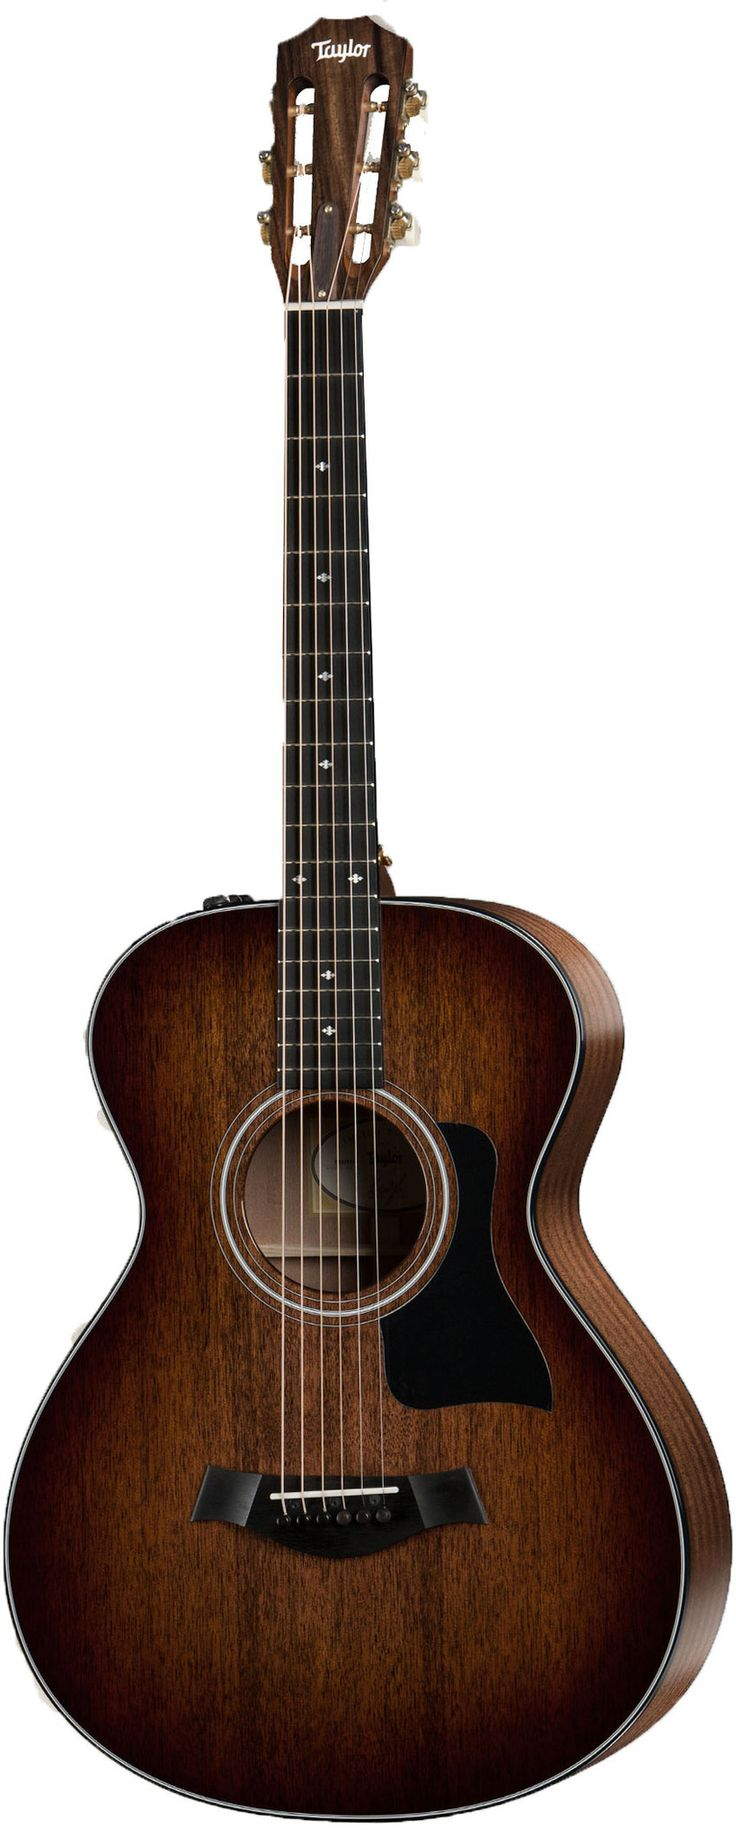 """A Compact and Comfortable Playing Experience Taylor has given a shorter 24-7/8"""" scale length to a mahogany and sapele Grand Concert body to produce the 322e, a wonderful and easy six-string machine. T"""